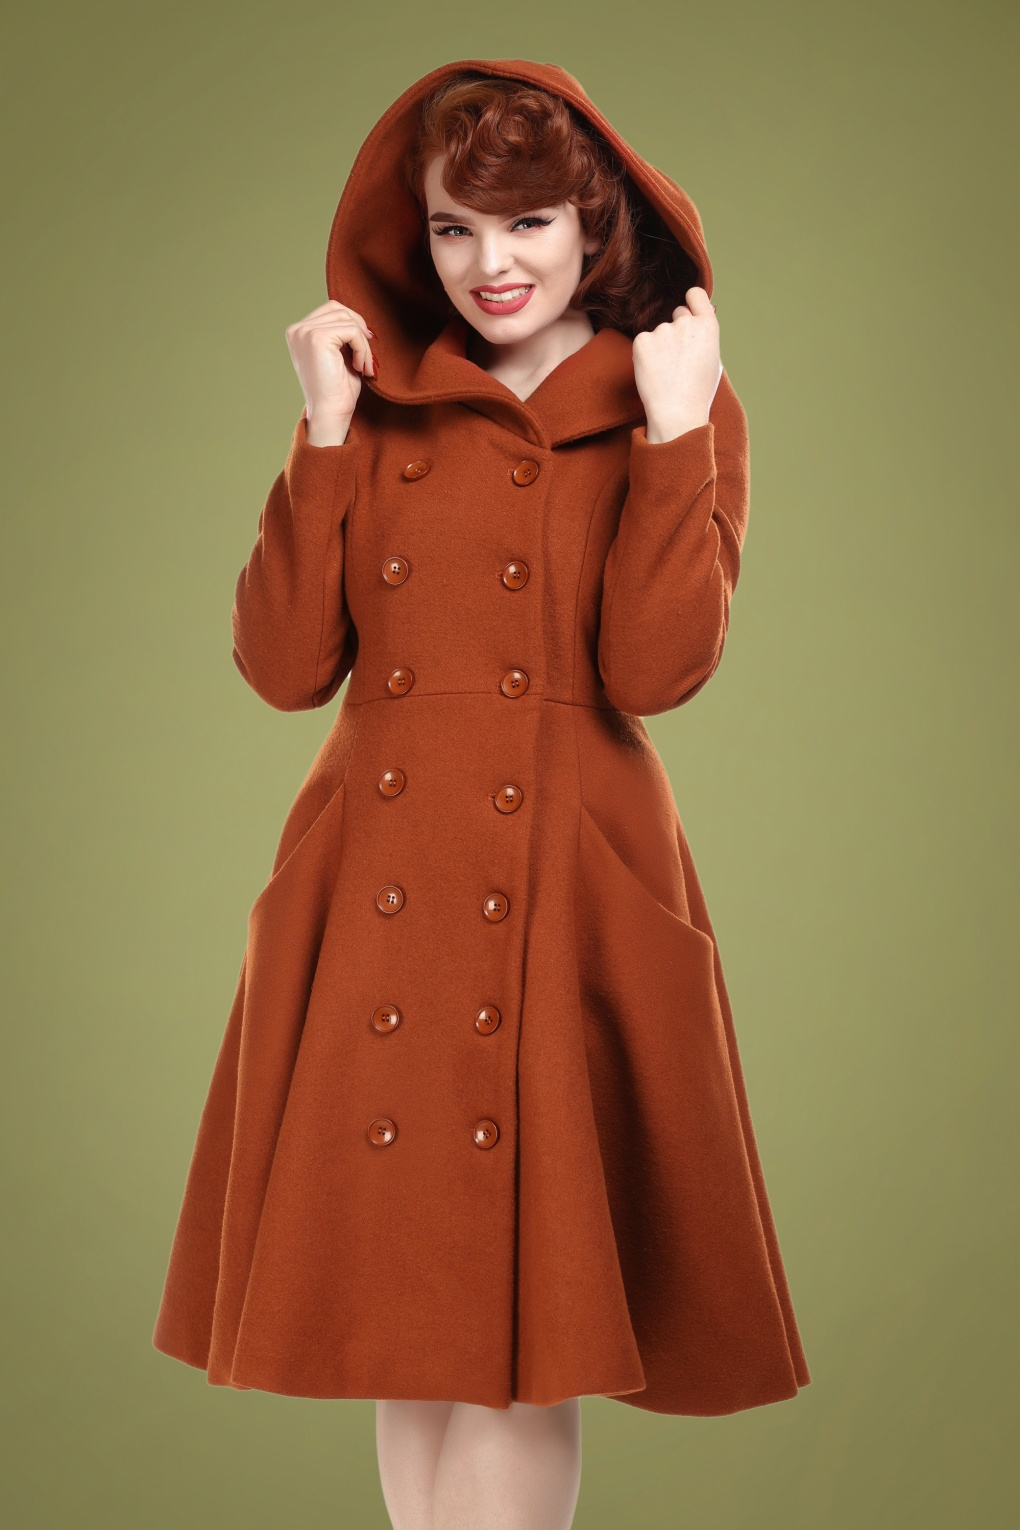 Vintage Coats & Jackets | Retro Coats and Jackets 50s Heather Hooded Swing Coat in Burnt Orange £161.59 AT vintagedancer.com